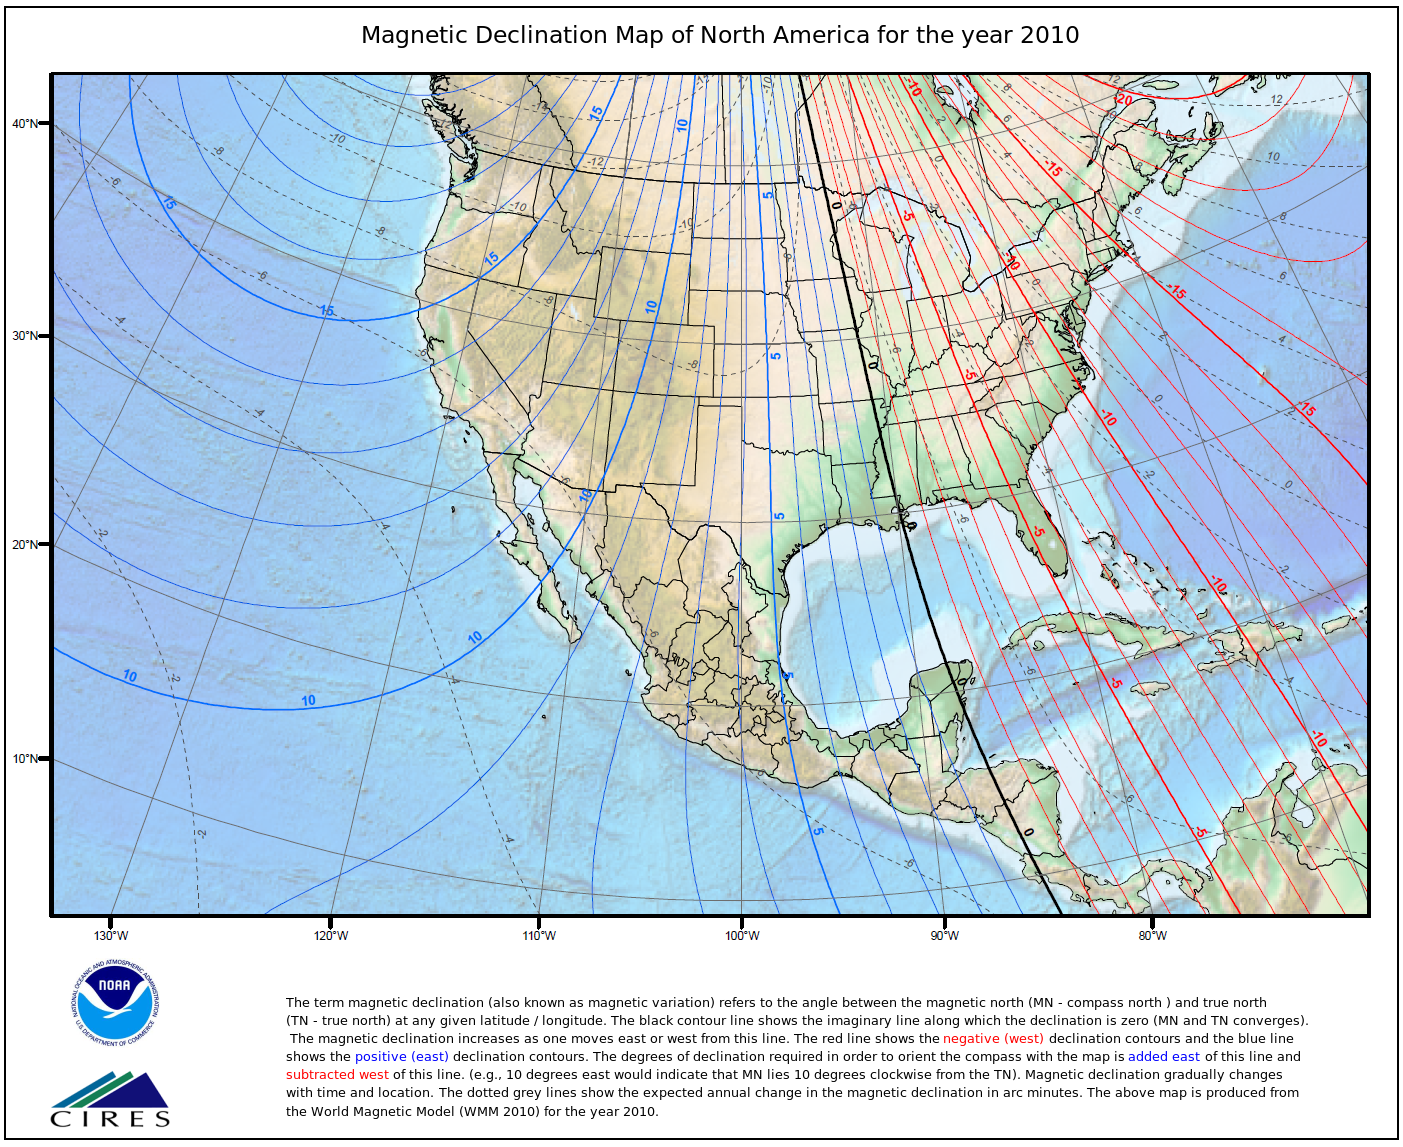 Magnetic Declination map for North America for the year 2010